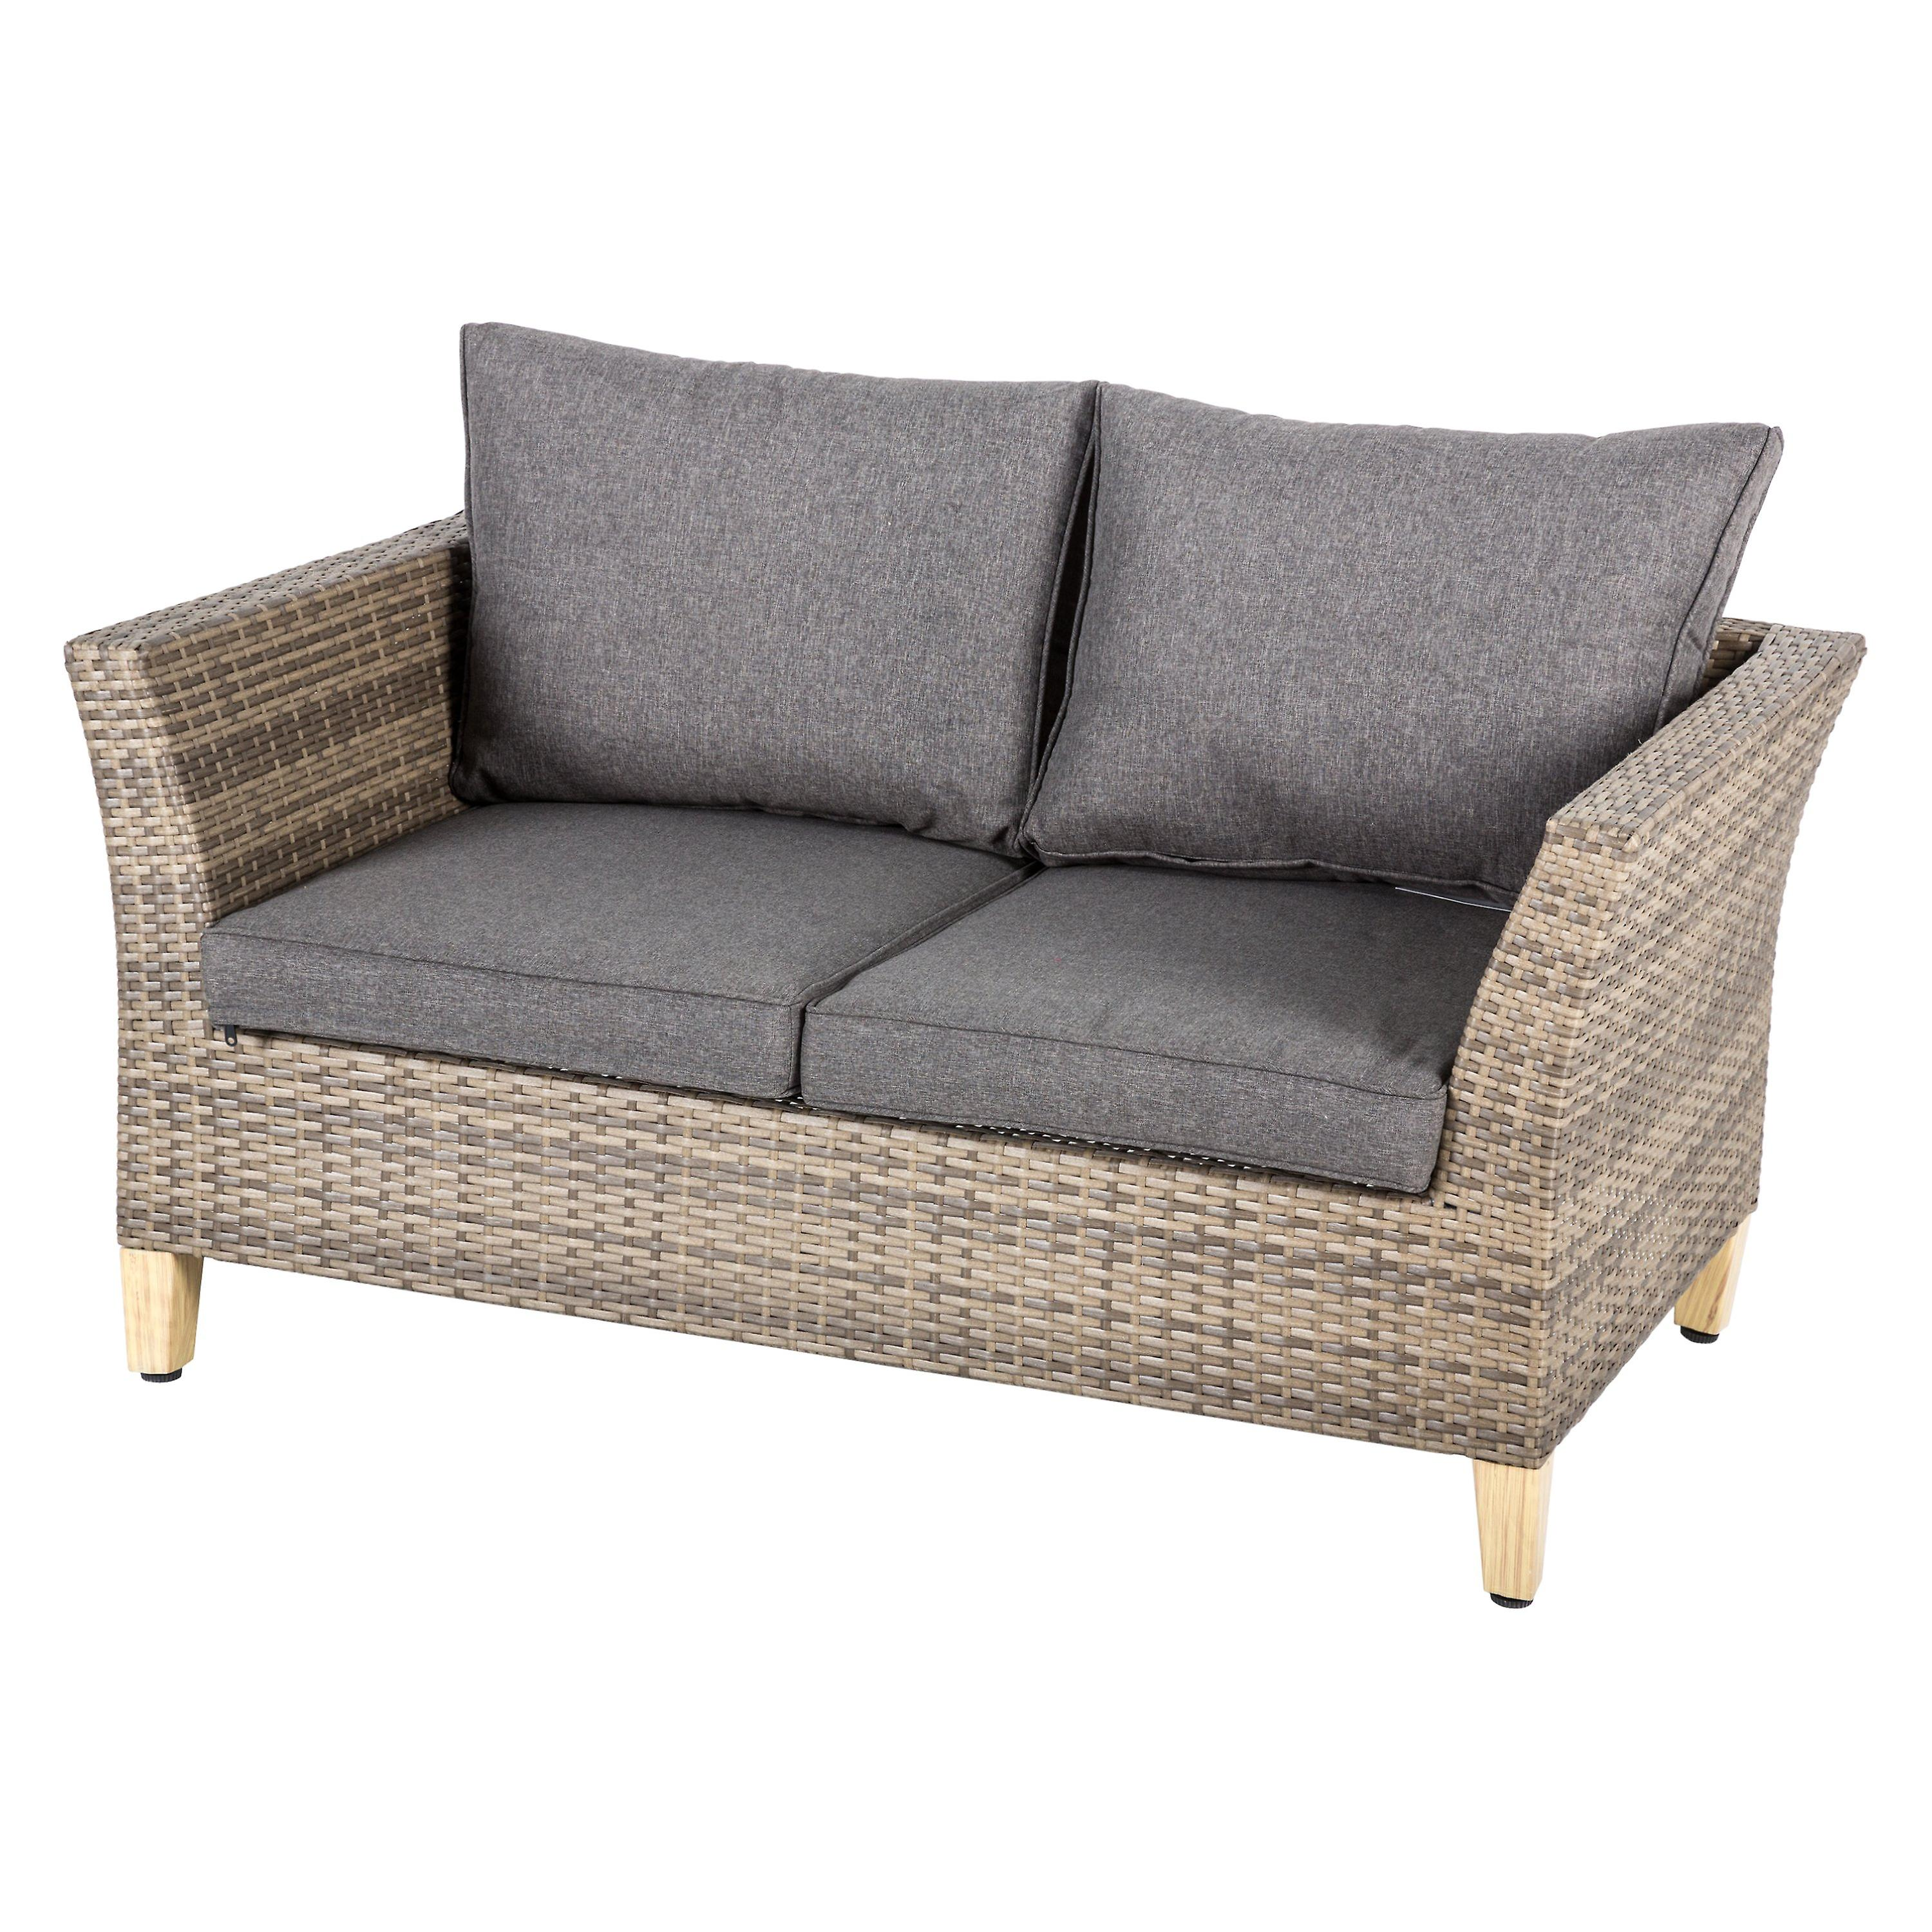 2 seater lounge couch-rattan